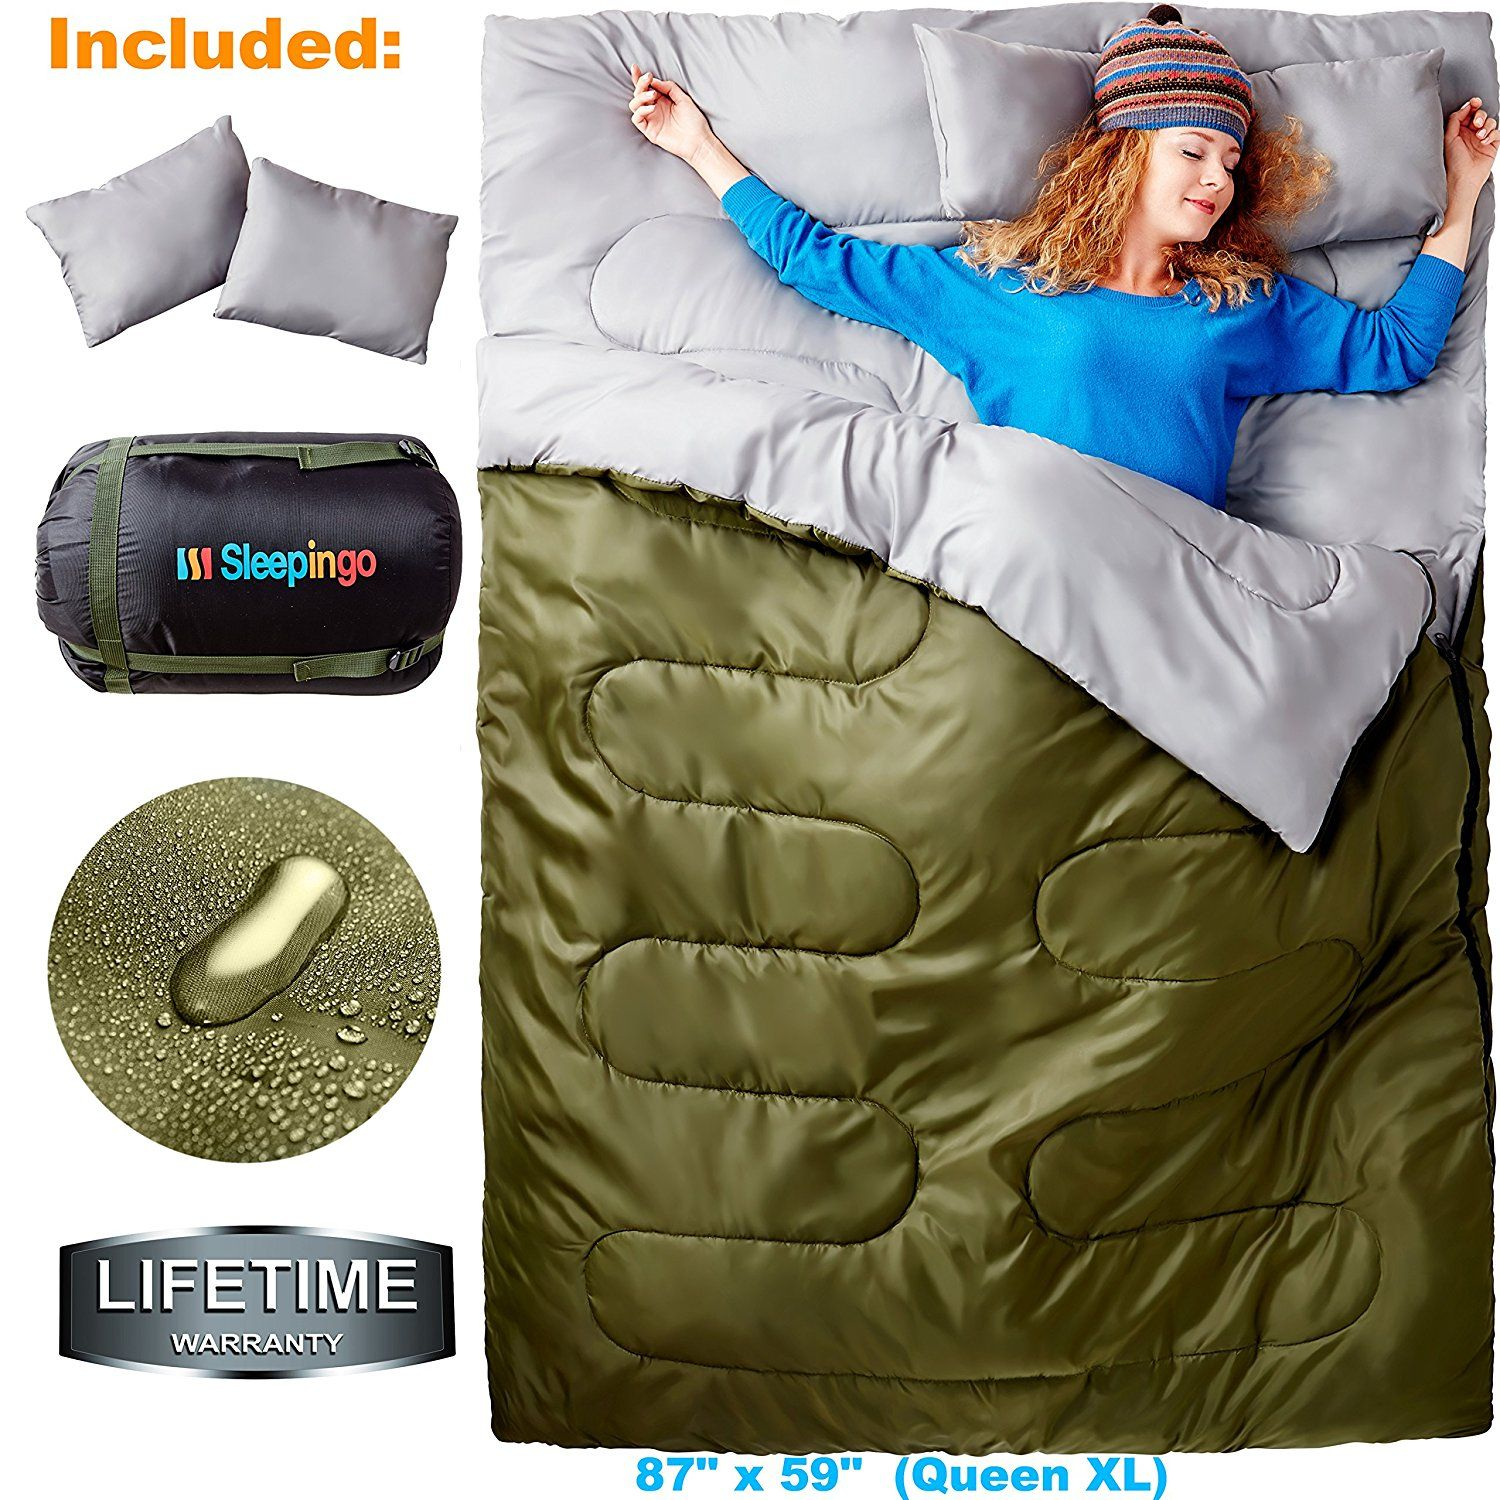 Sleepingo Double Sleeping Bag For Backng Camping Or Hiking Queen Size Xl